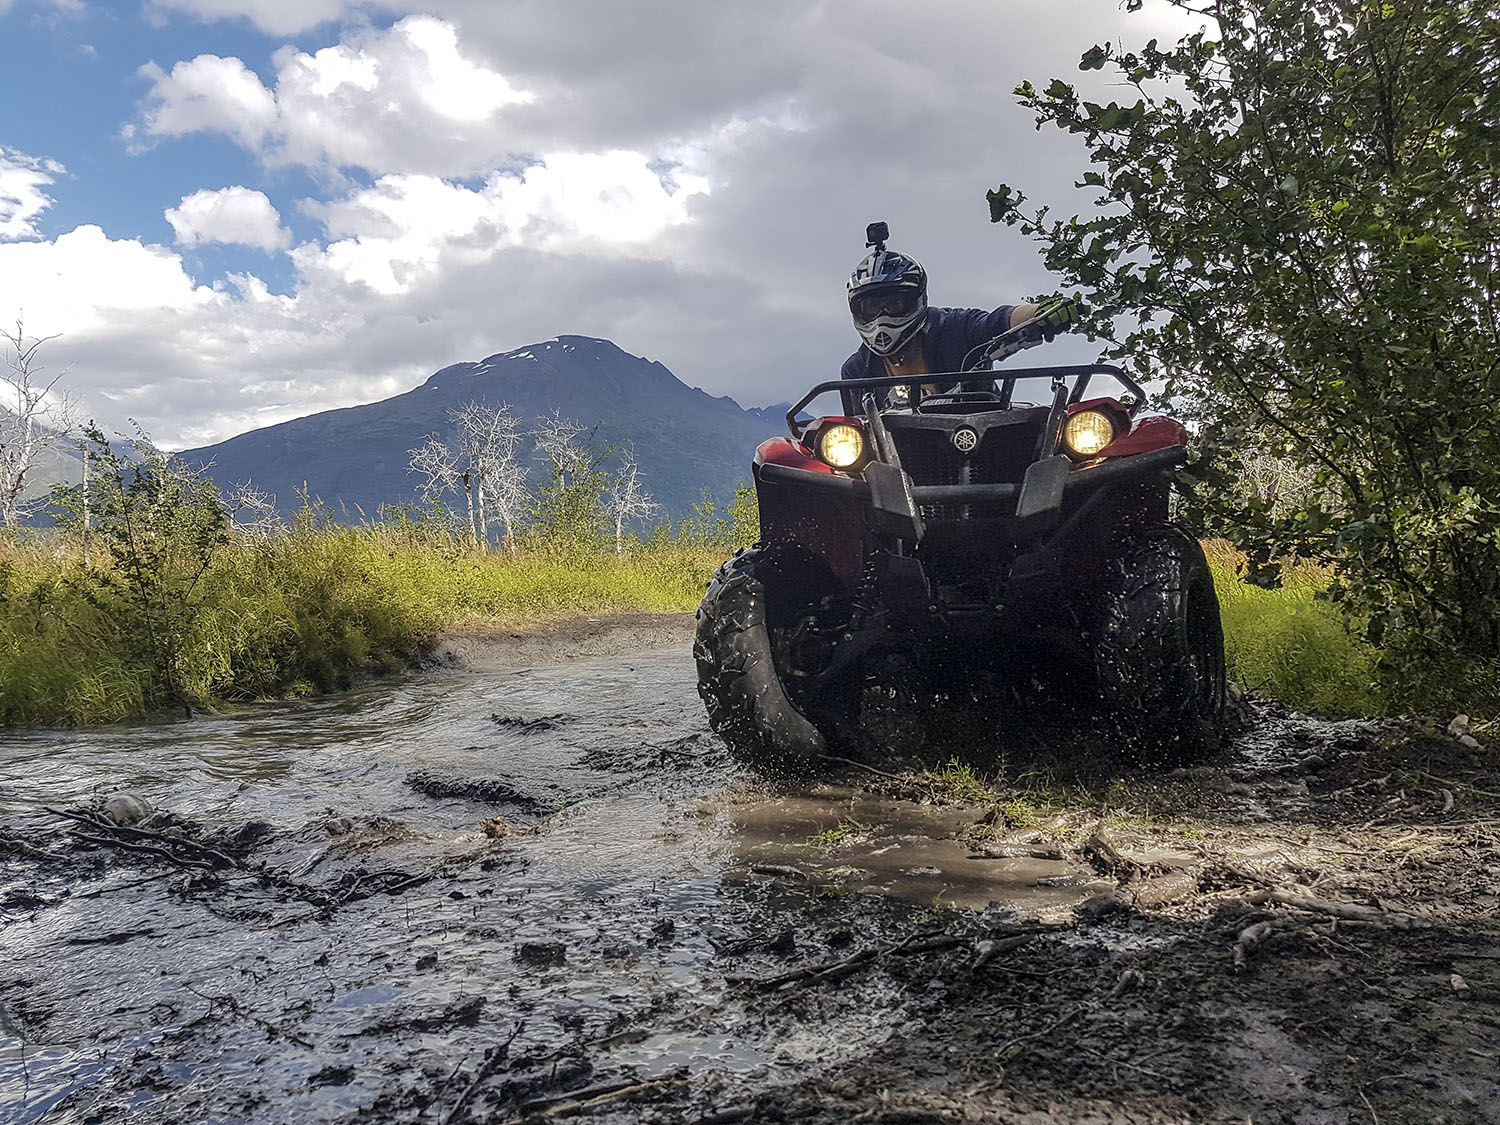 ATV Rider Making Water Crossing in the Knik River Valley